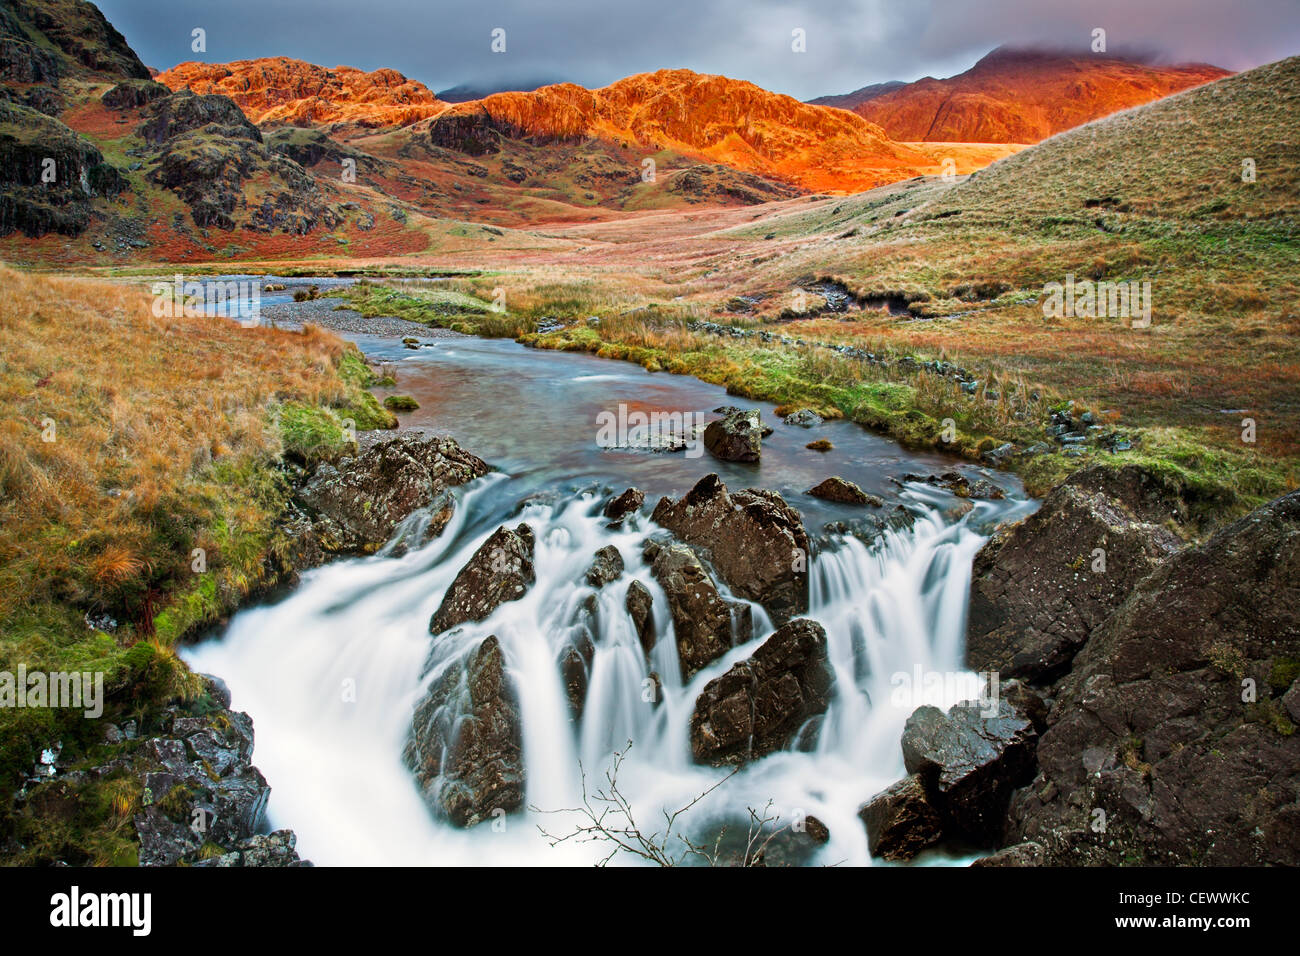 A view of the River Esk near Great Moss. The River Esk begins here below Scafell Pike in the English Lake District - Stock Image